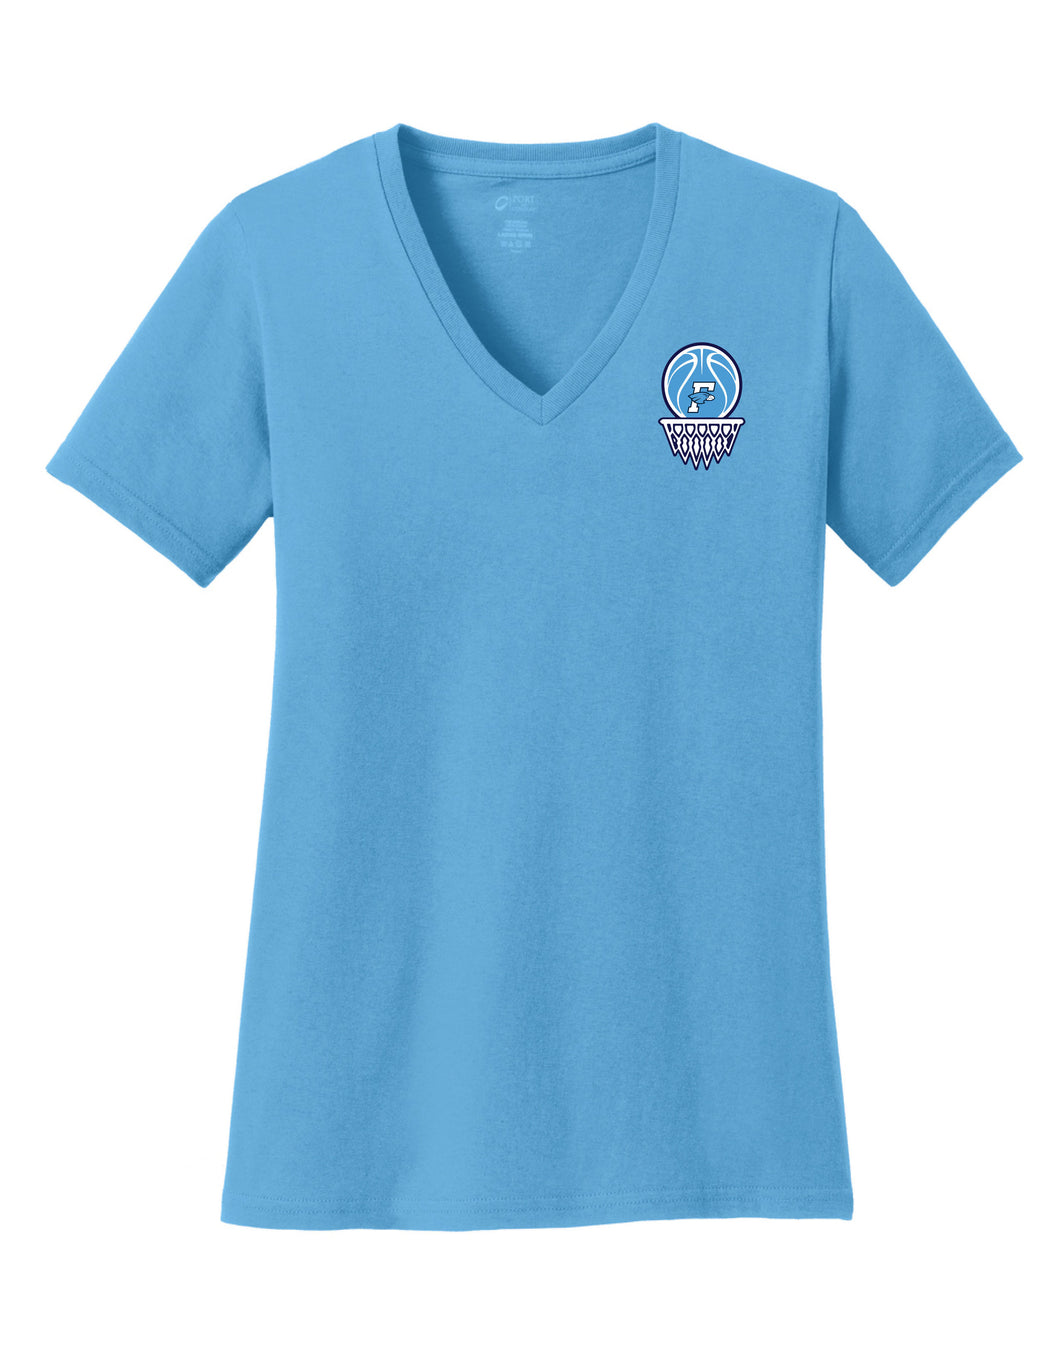 Fairborn Basketball - Ladies V-Neck Tee (Aquatic Blue)